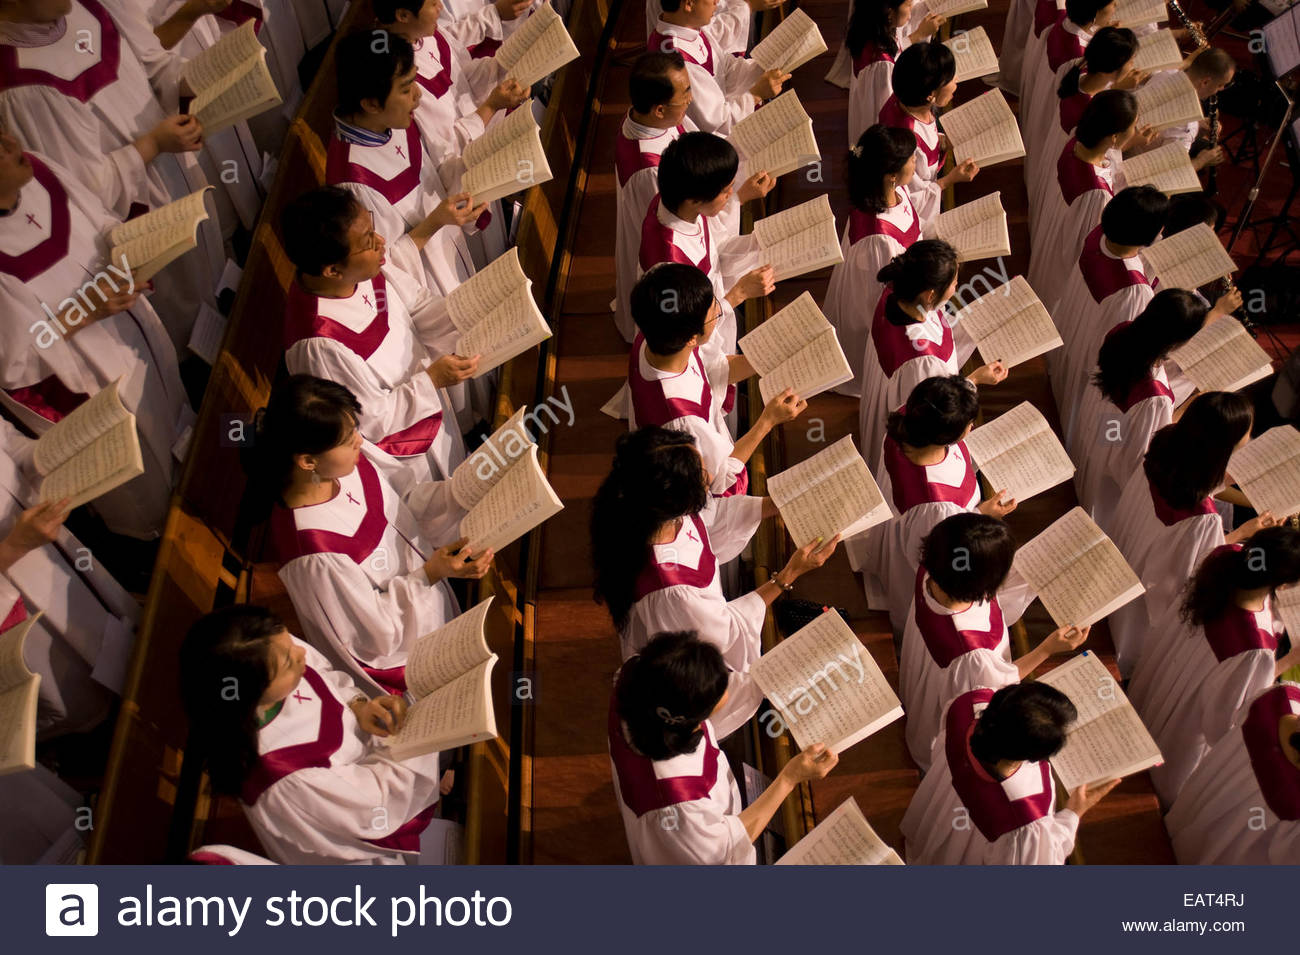 The church's choir sings from their hymnals during church service. - Stock Image